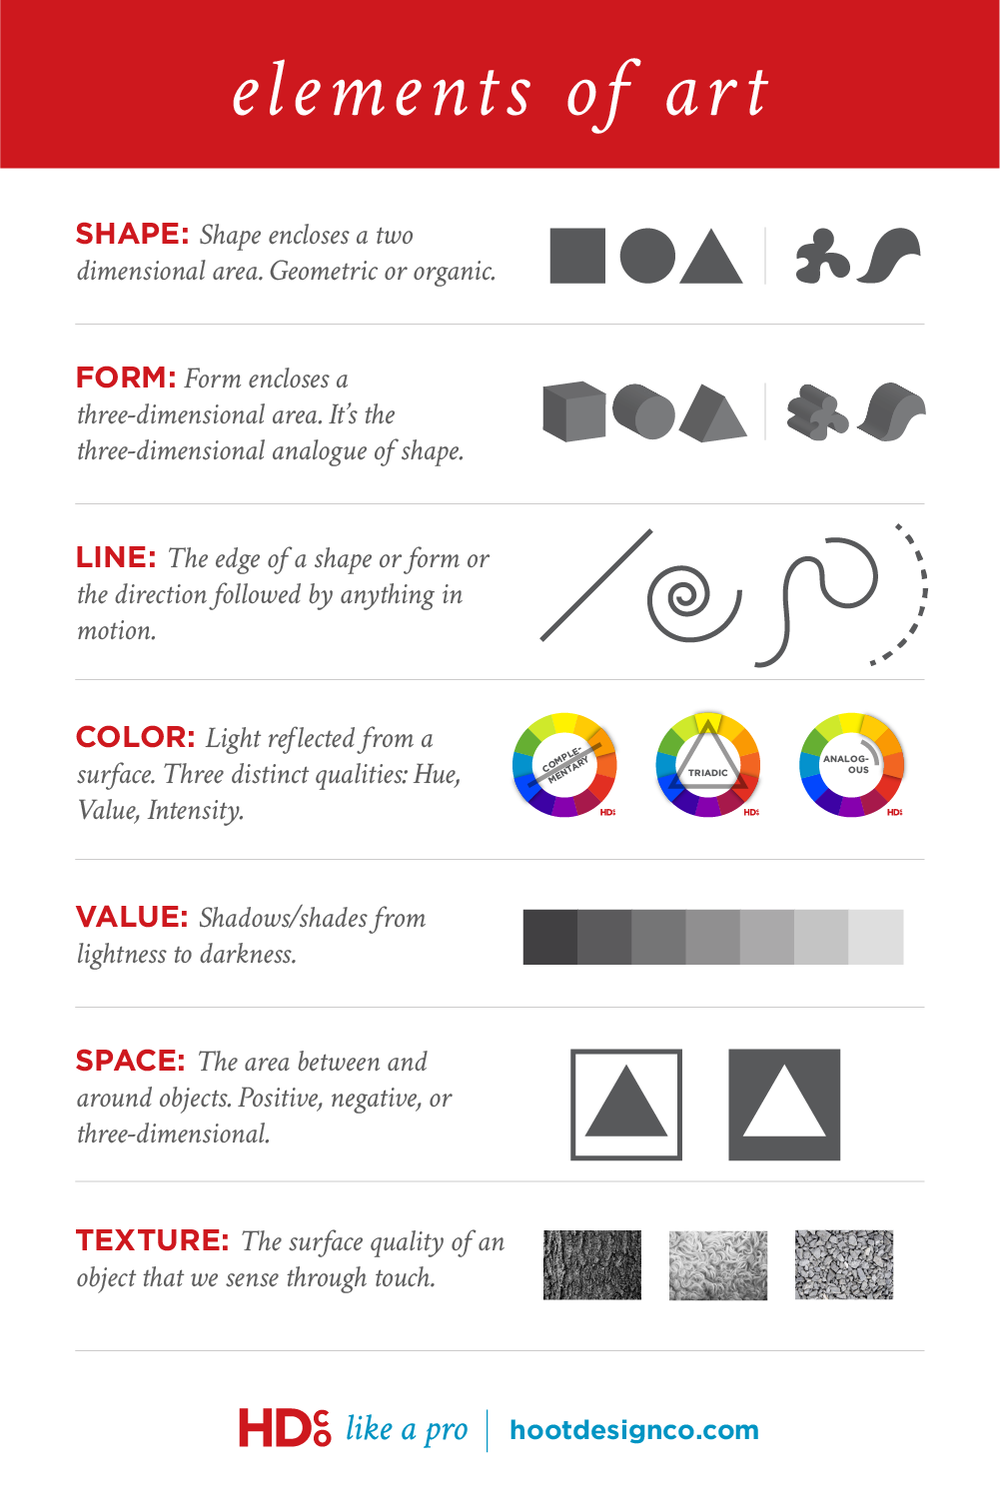 7 Elements Of Art Examples : The elements of art hoot design co web